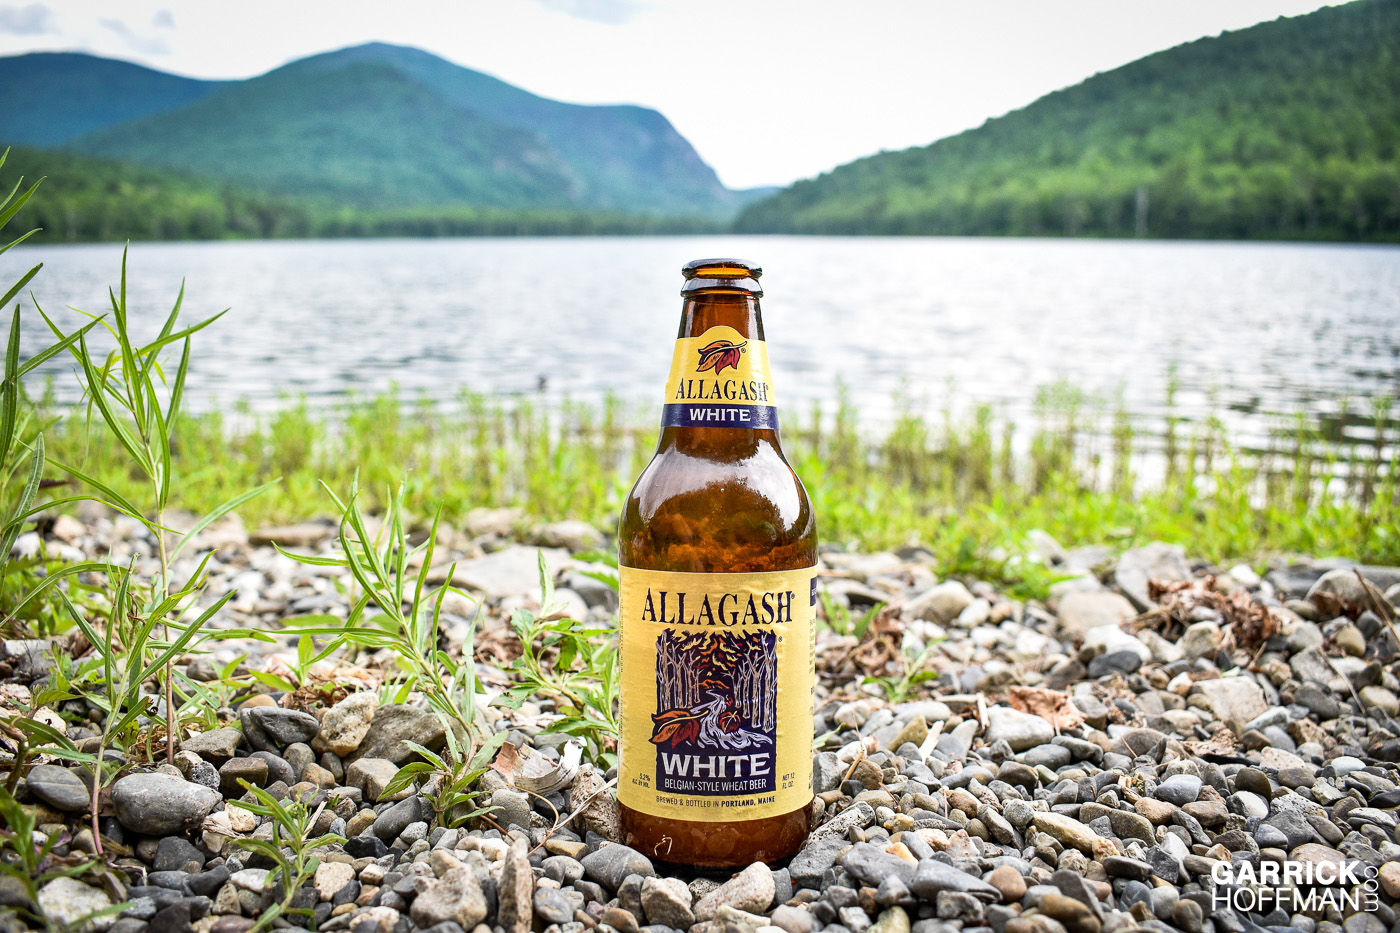 Allagash Brewing Company Beer by Garrick Hoffman Photography